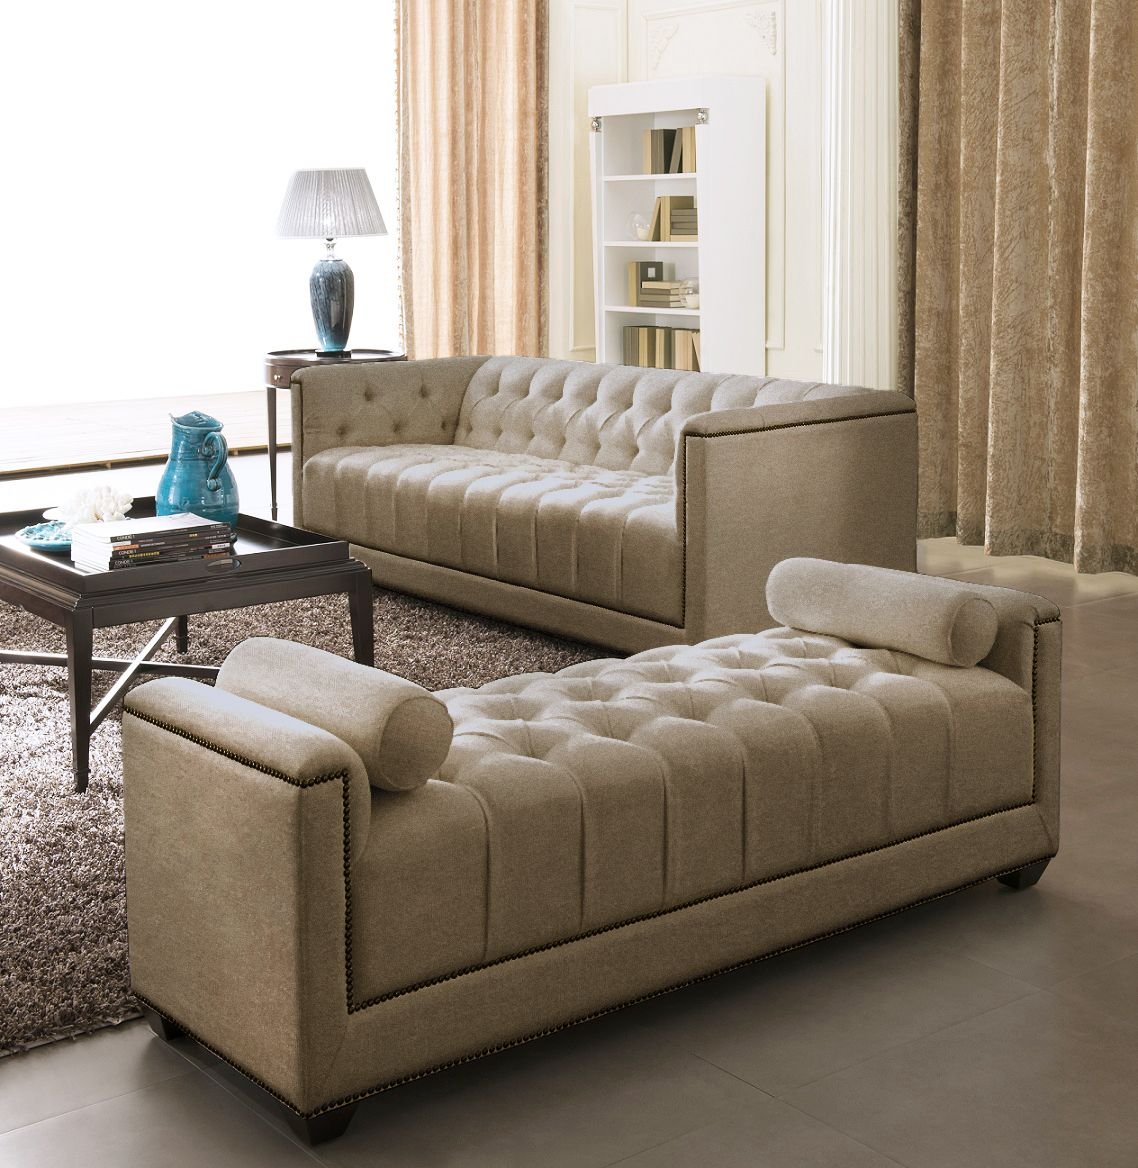 brown design sofa cama